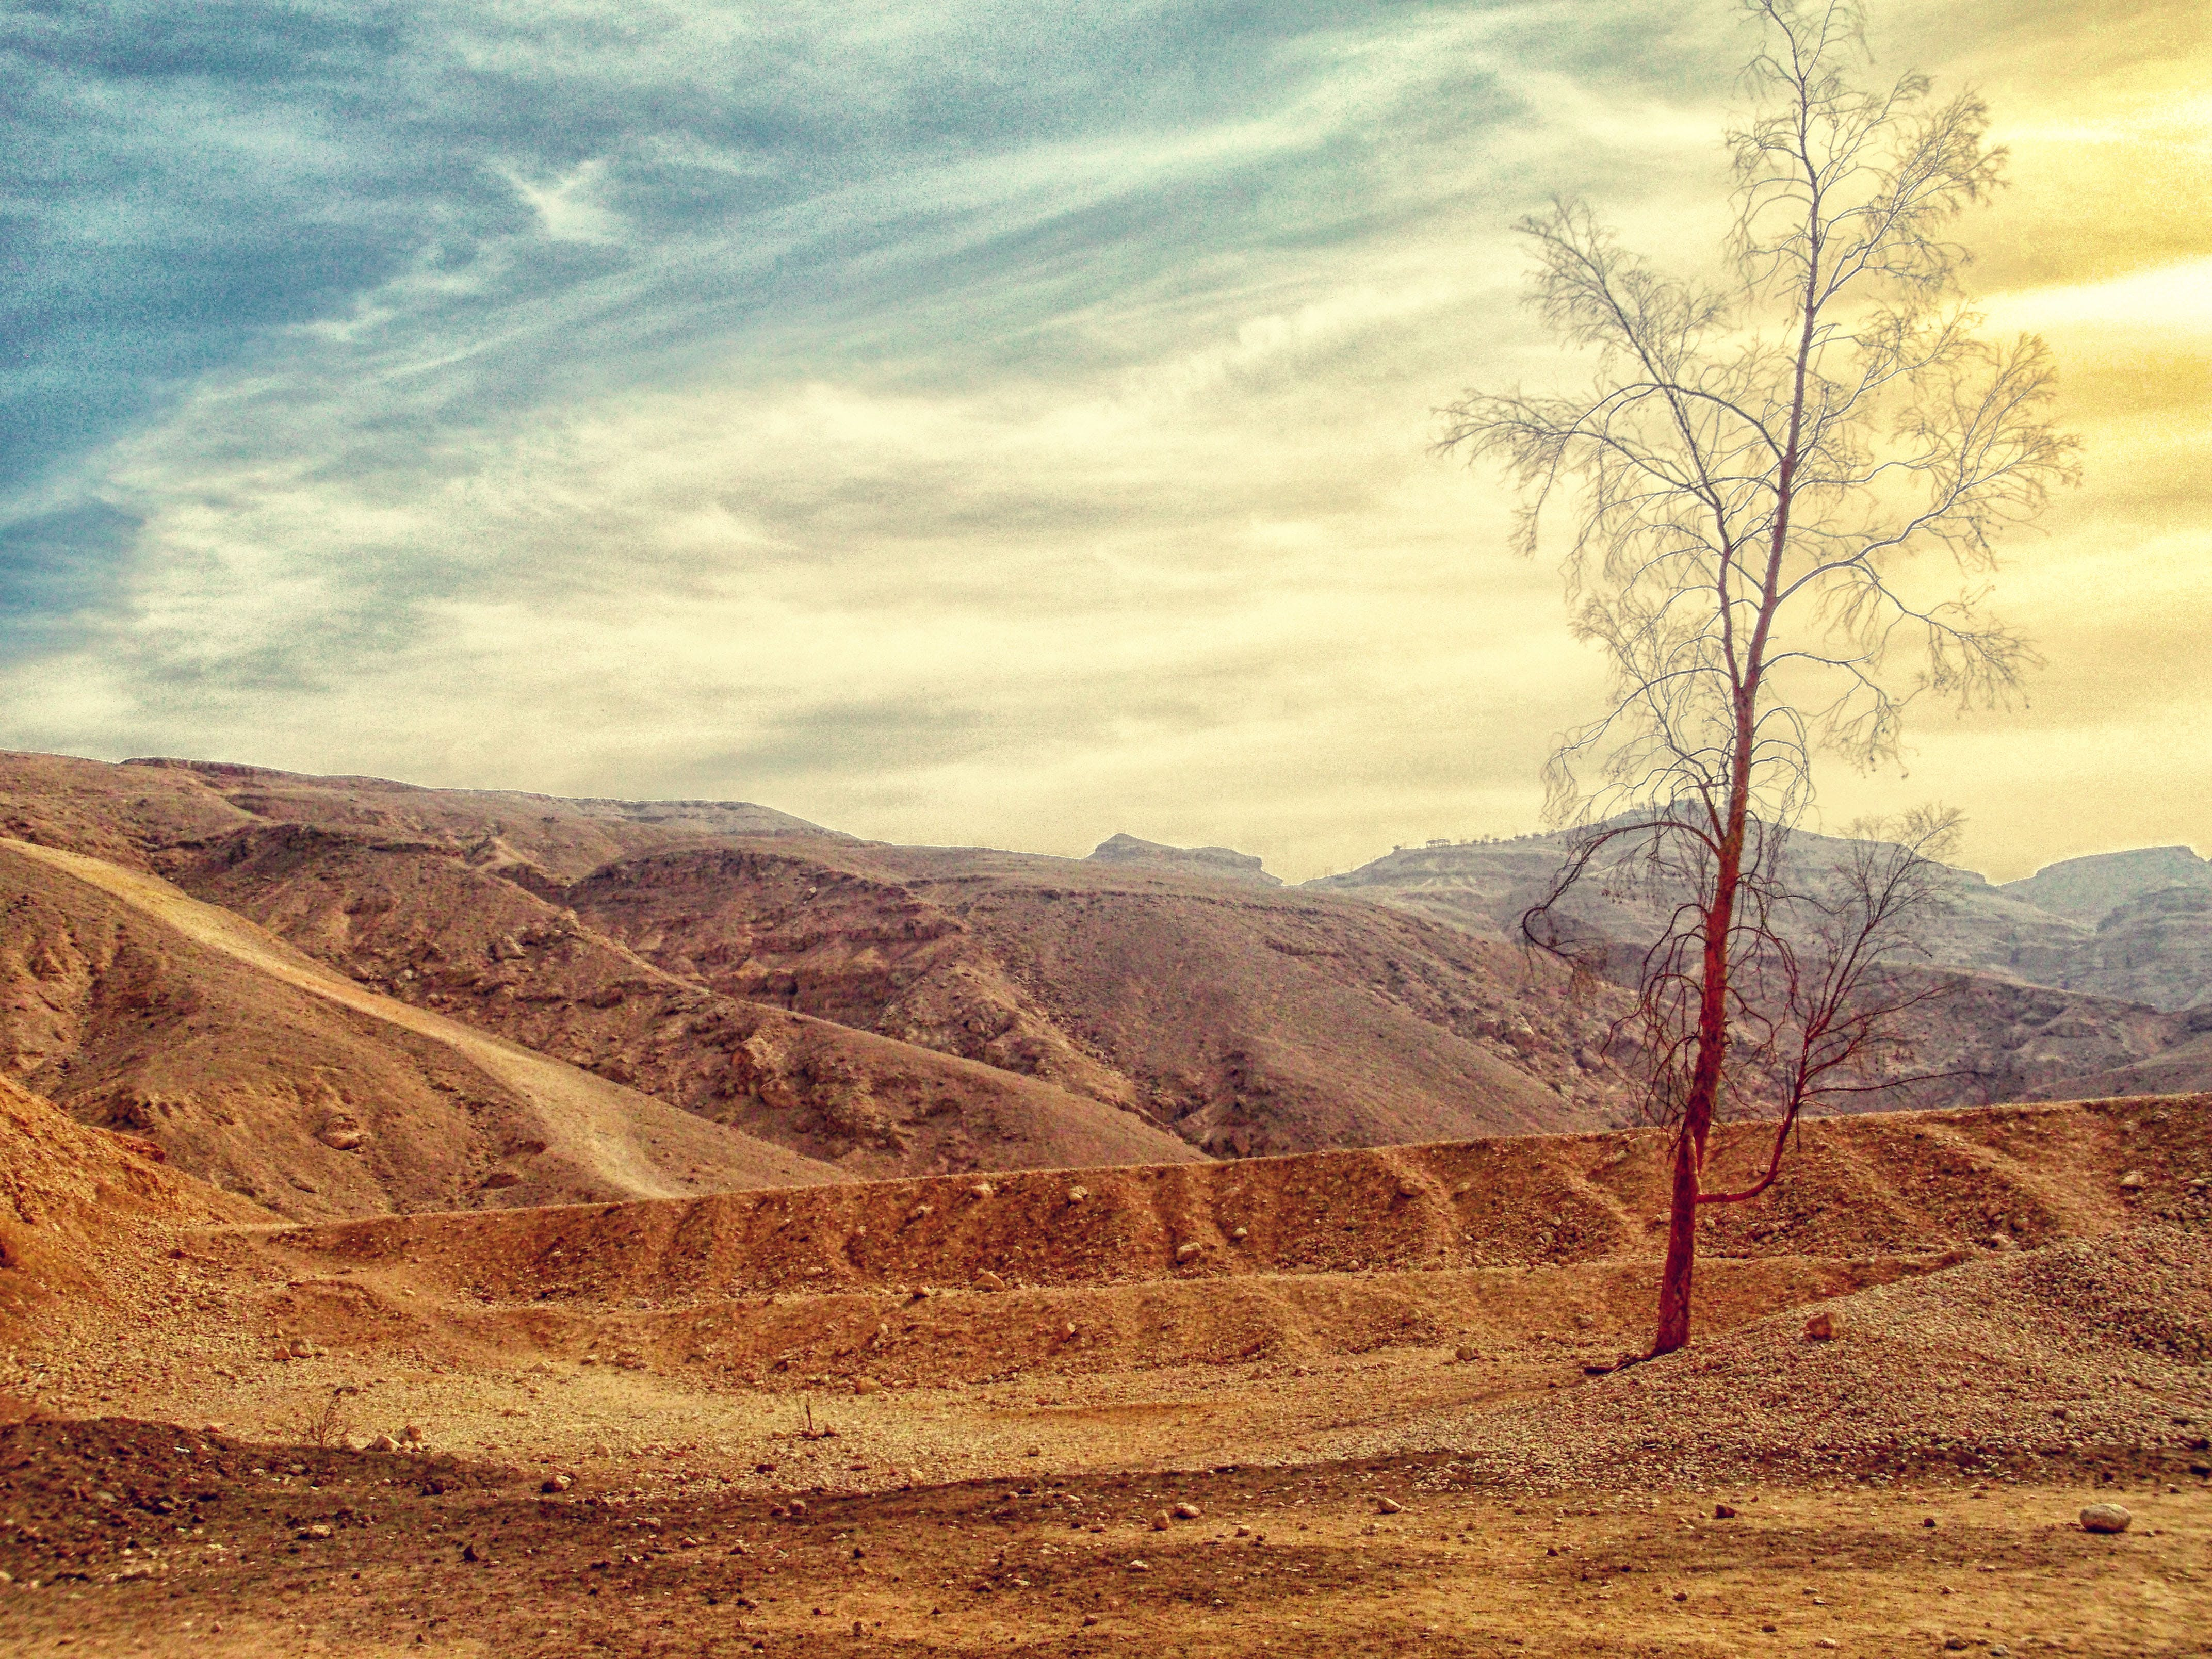 Free stock photo of landscape, mountains, nature, sand